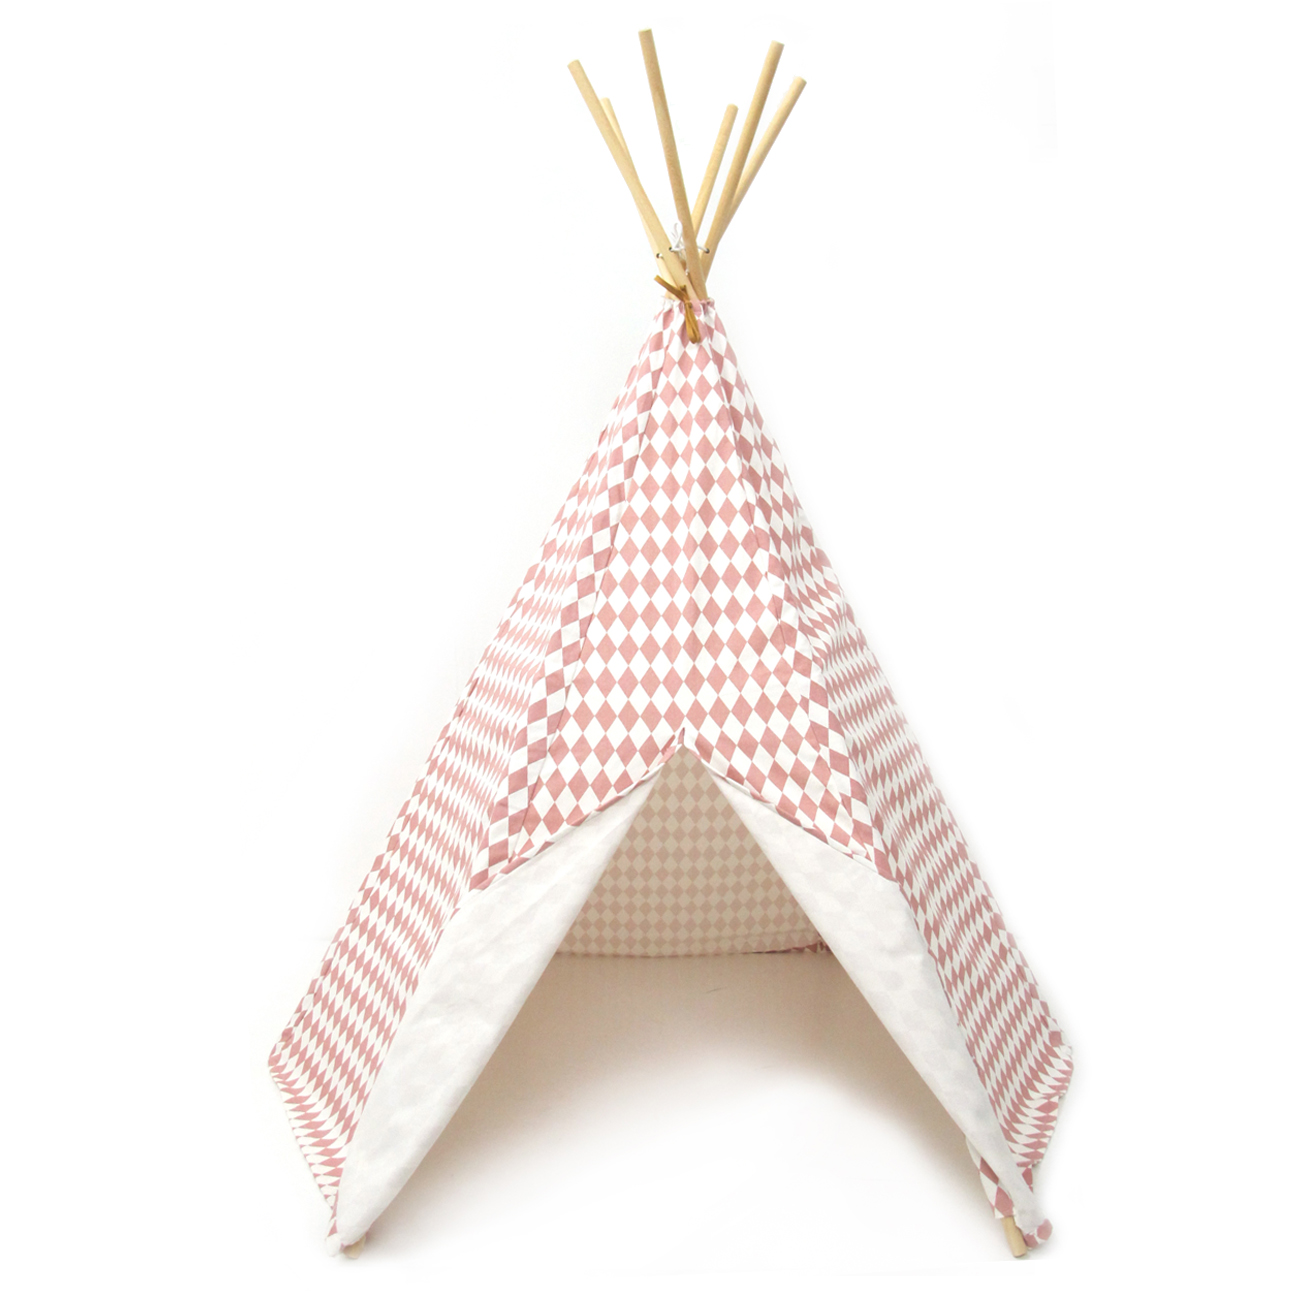 tipi arizona losanges rose nobodinoz pour chambre enfant. Black Bedroom Furniture Sets. Home Design Ideas